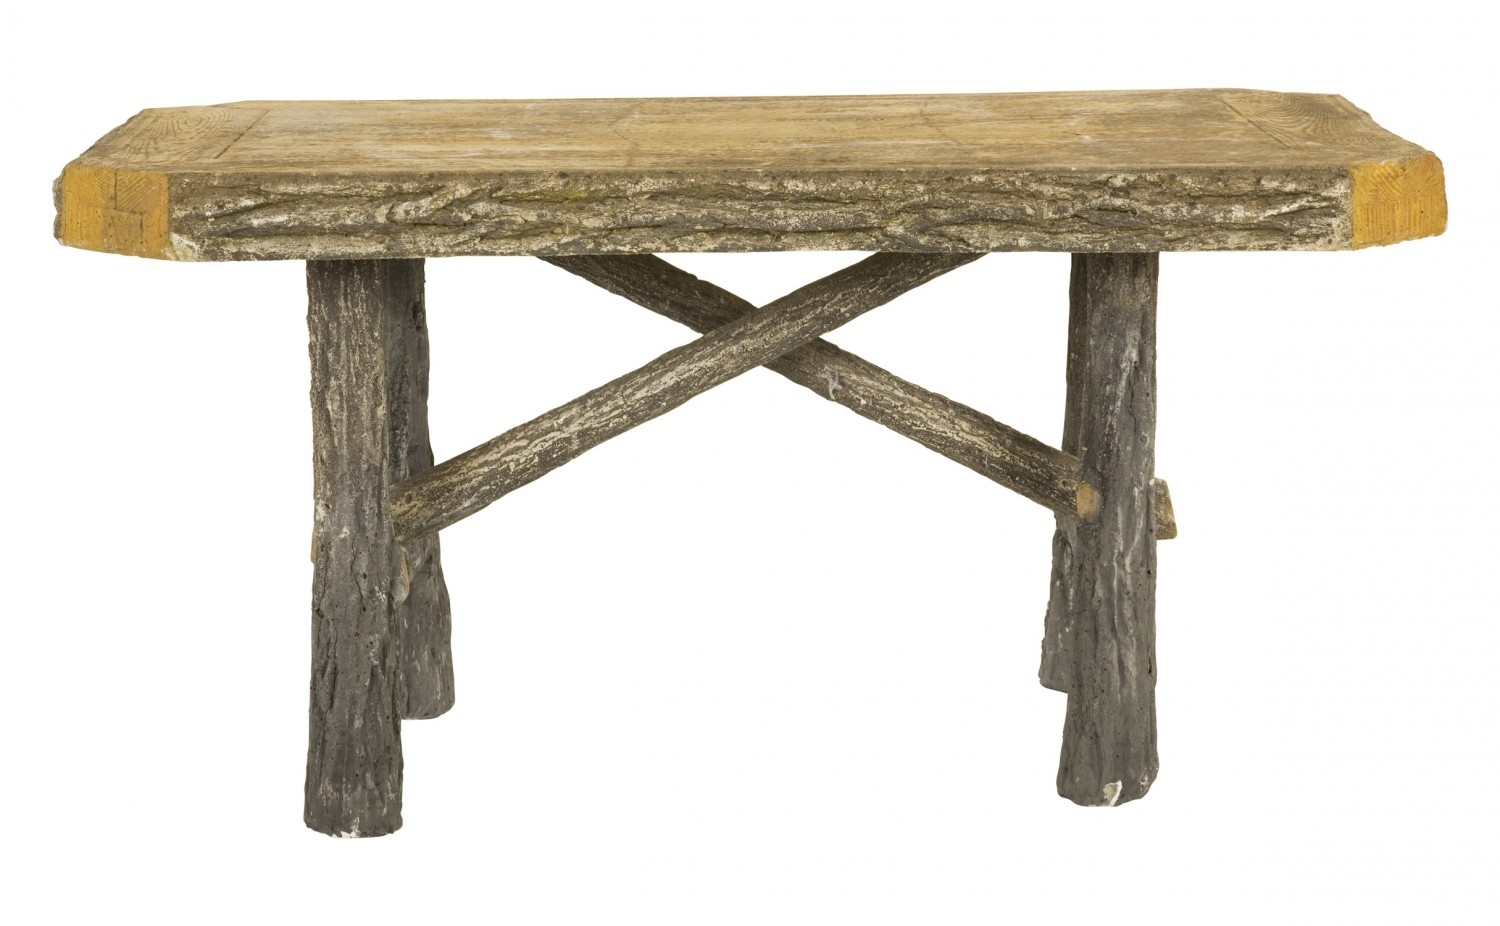 Antique Faux Bois Table | Jayson Home throughout Faux Bois Coffee Tables (Image 4 of 30)